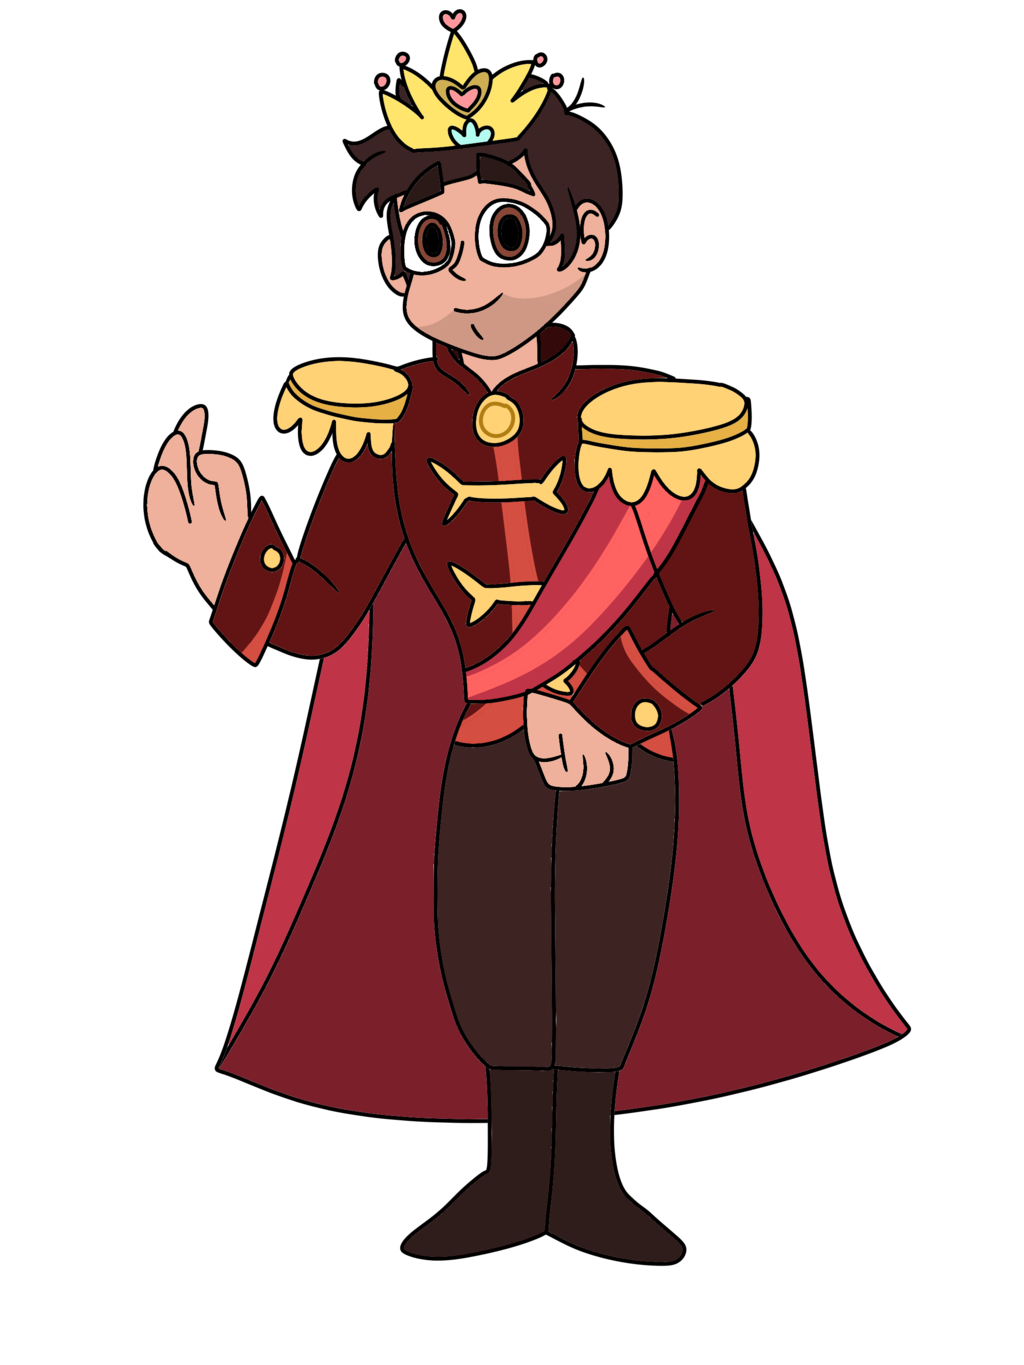 King clipart wise man. Marco by infaminxy on